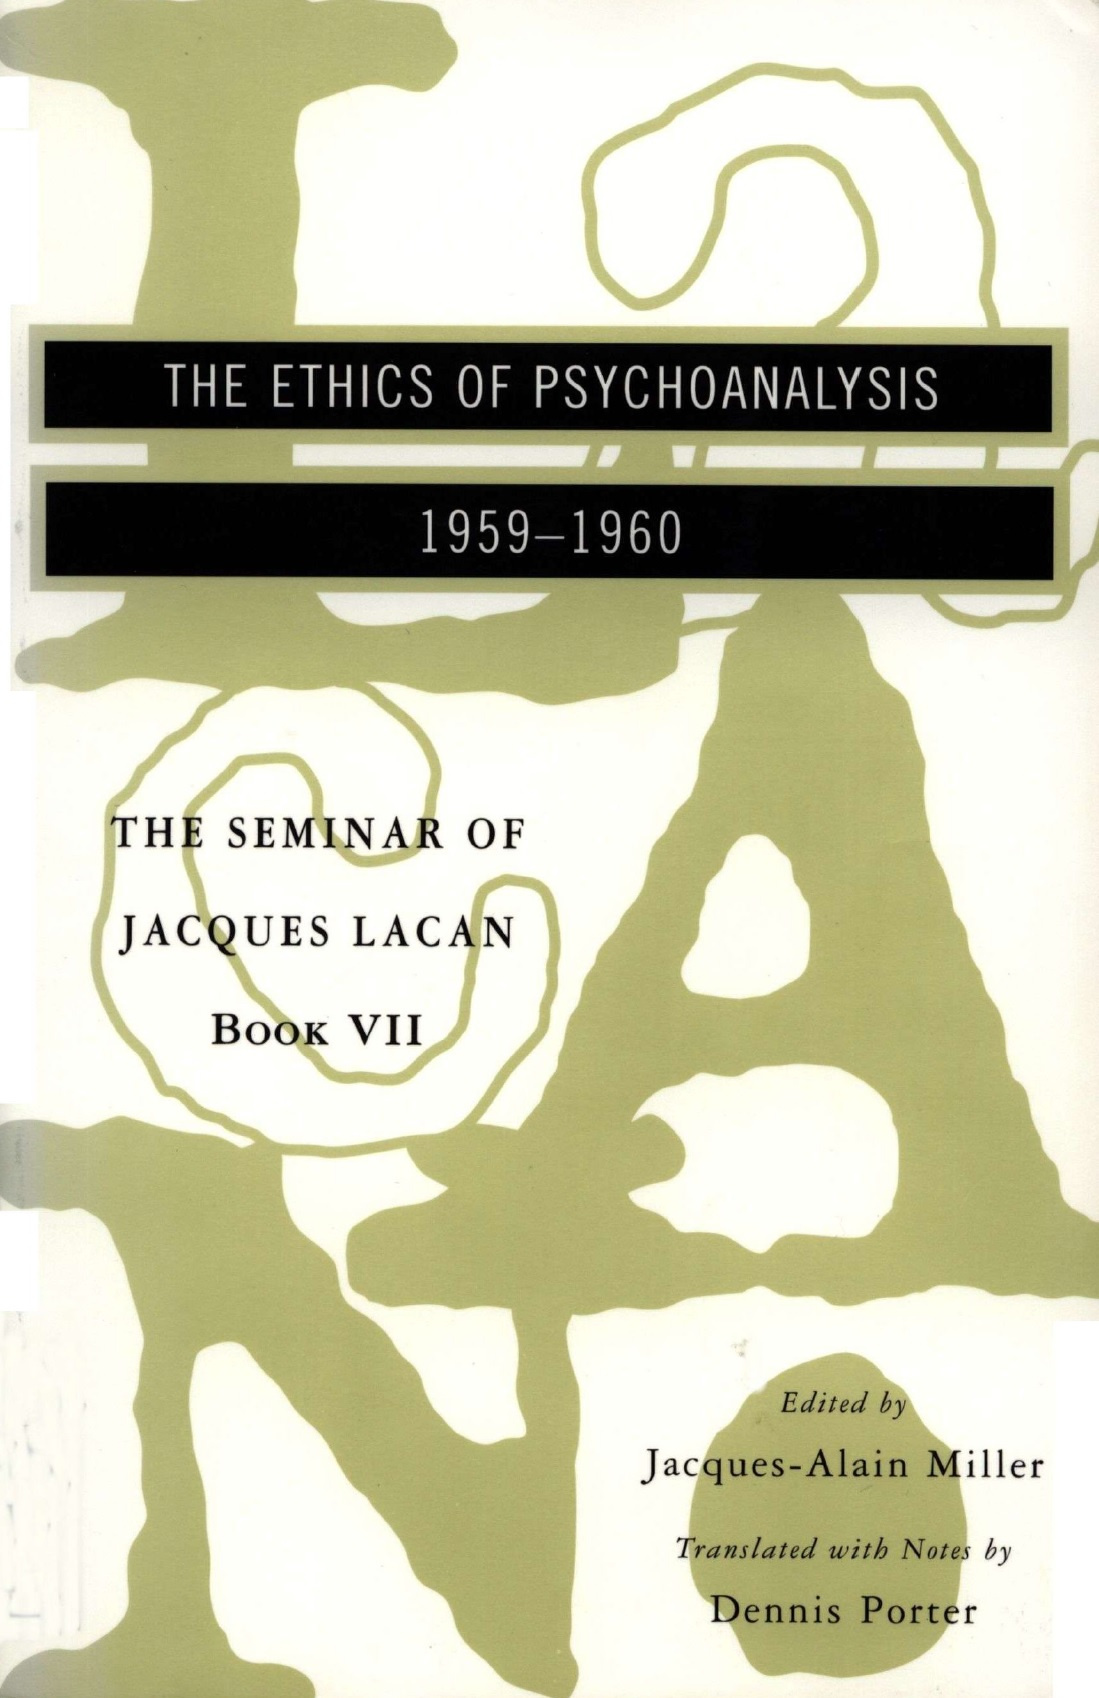 Jacques-lacan-the-seminar-of-jacques-lacan-book-vii-1959-1960-the-ethics-of-psychoanalysis-theoryleaks.jpg